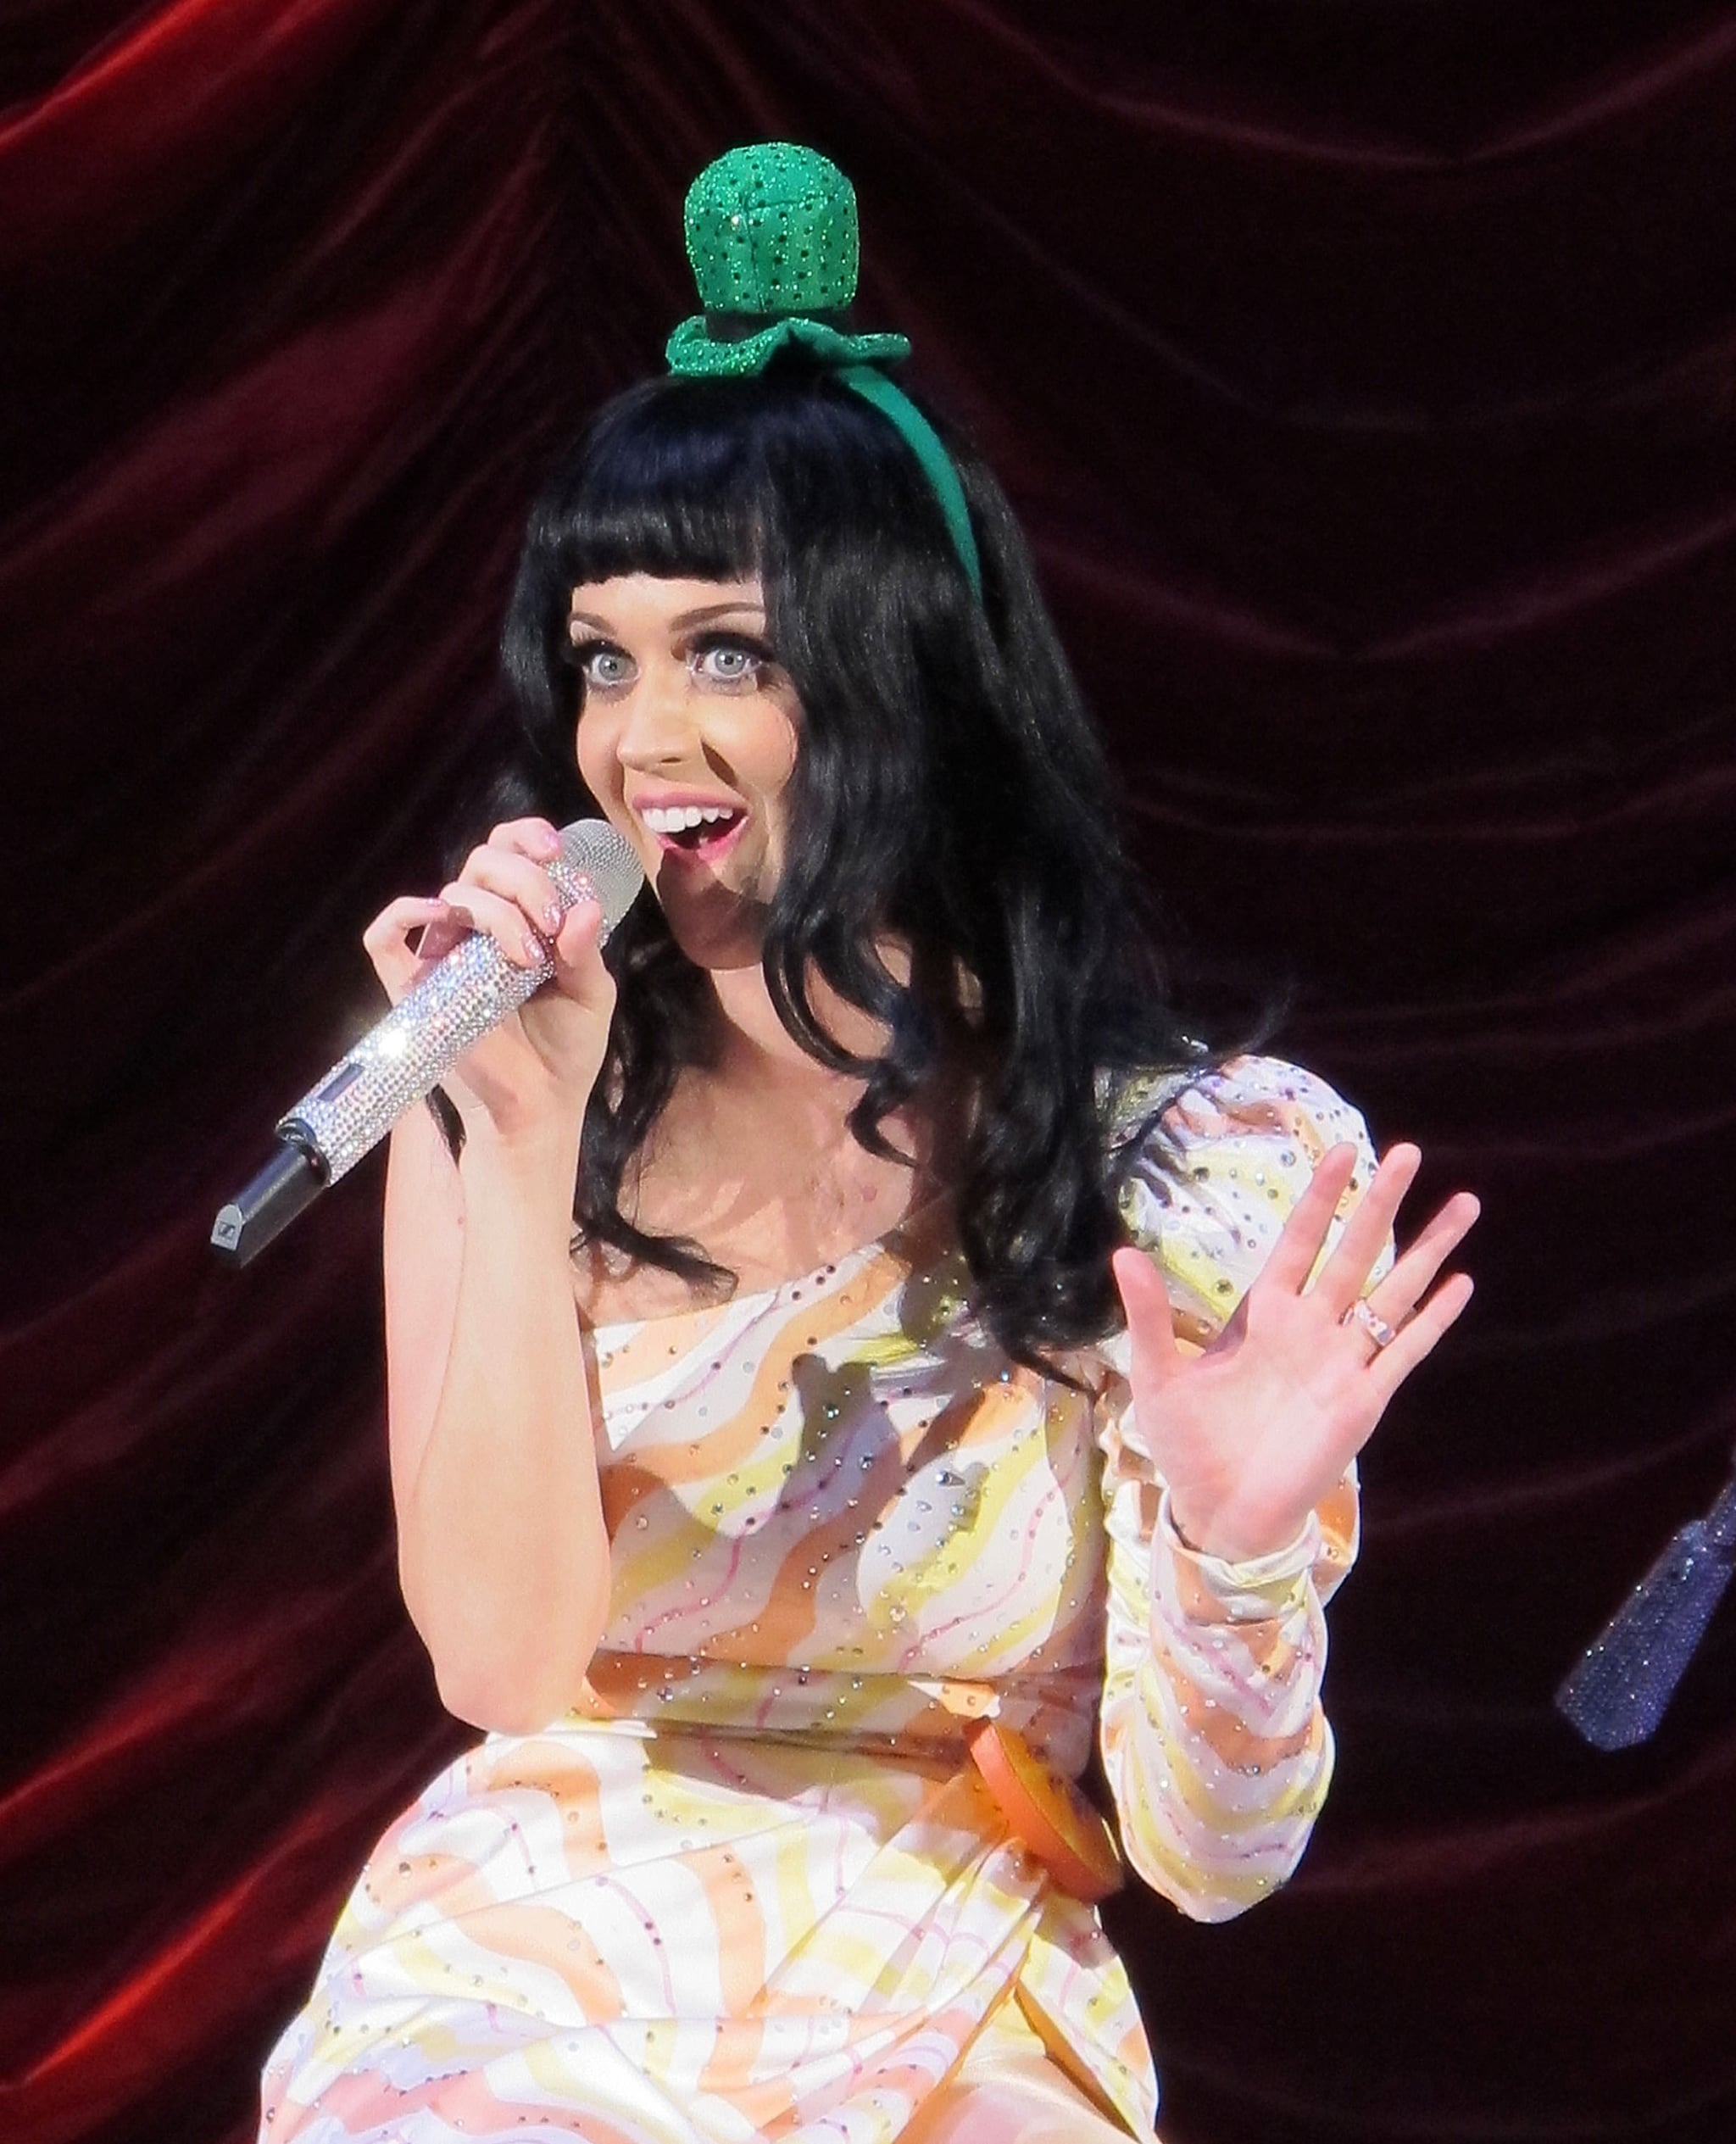 Katy Perry threw on a leprechaun hat during her California Dreams world tour in London on St. Patrick's Day 2011.